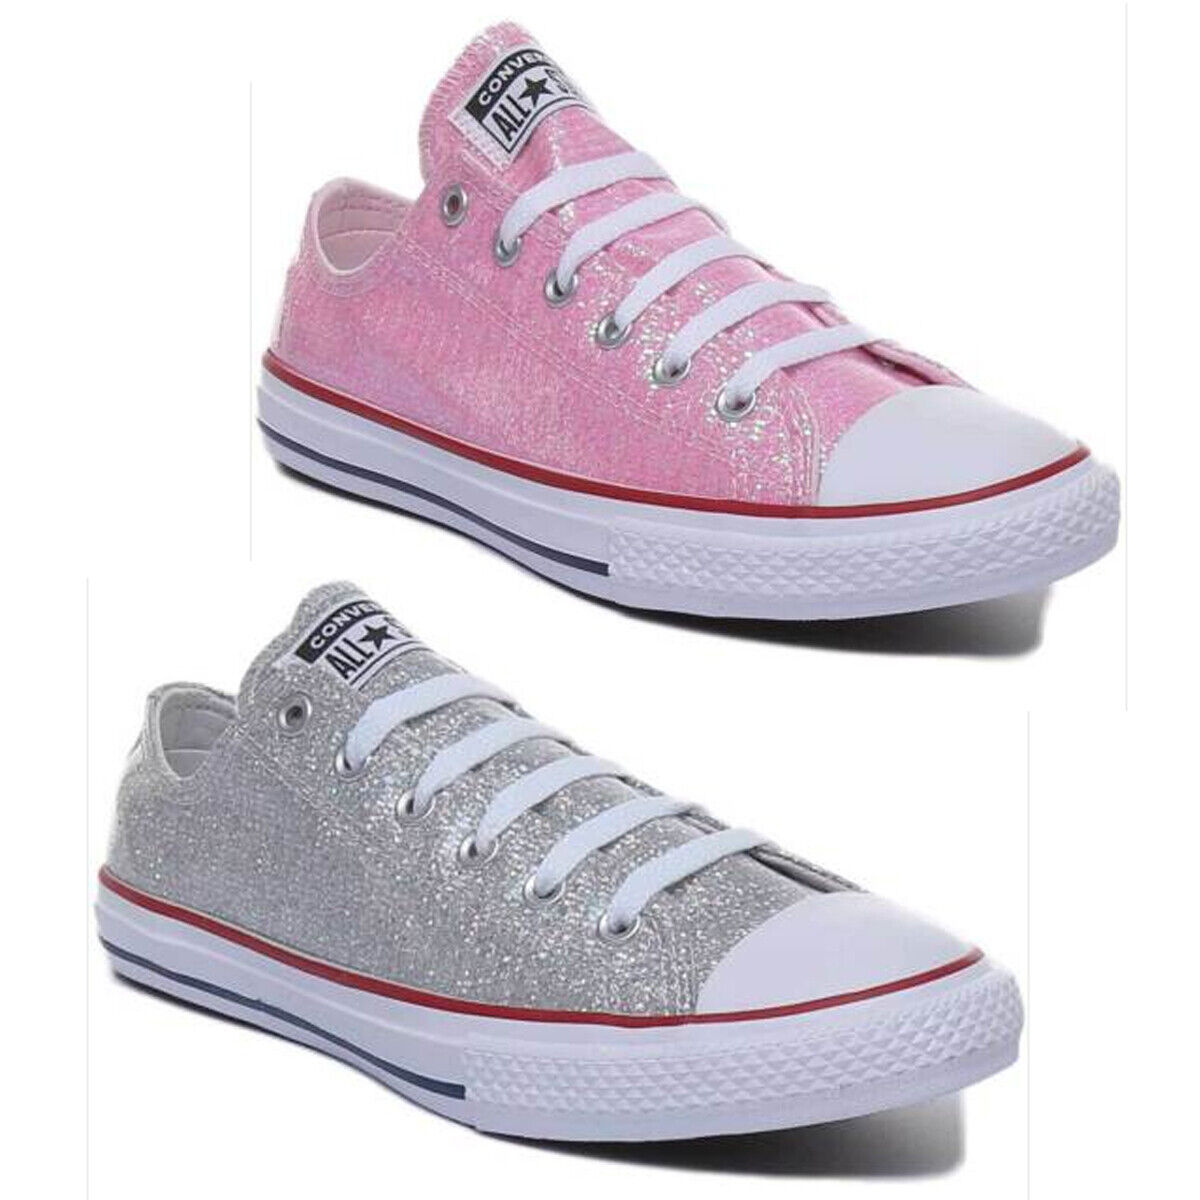 Converse 663627 C ect Sparkle Lowlace Youth Trainer argent Toile Taille UK 3 - 6